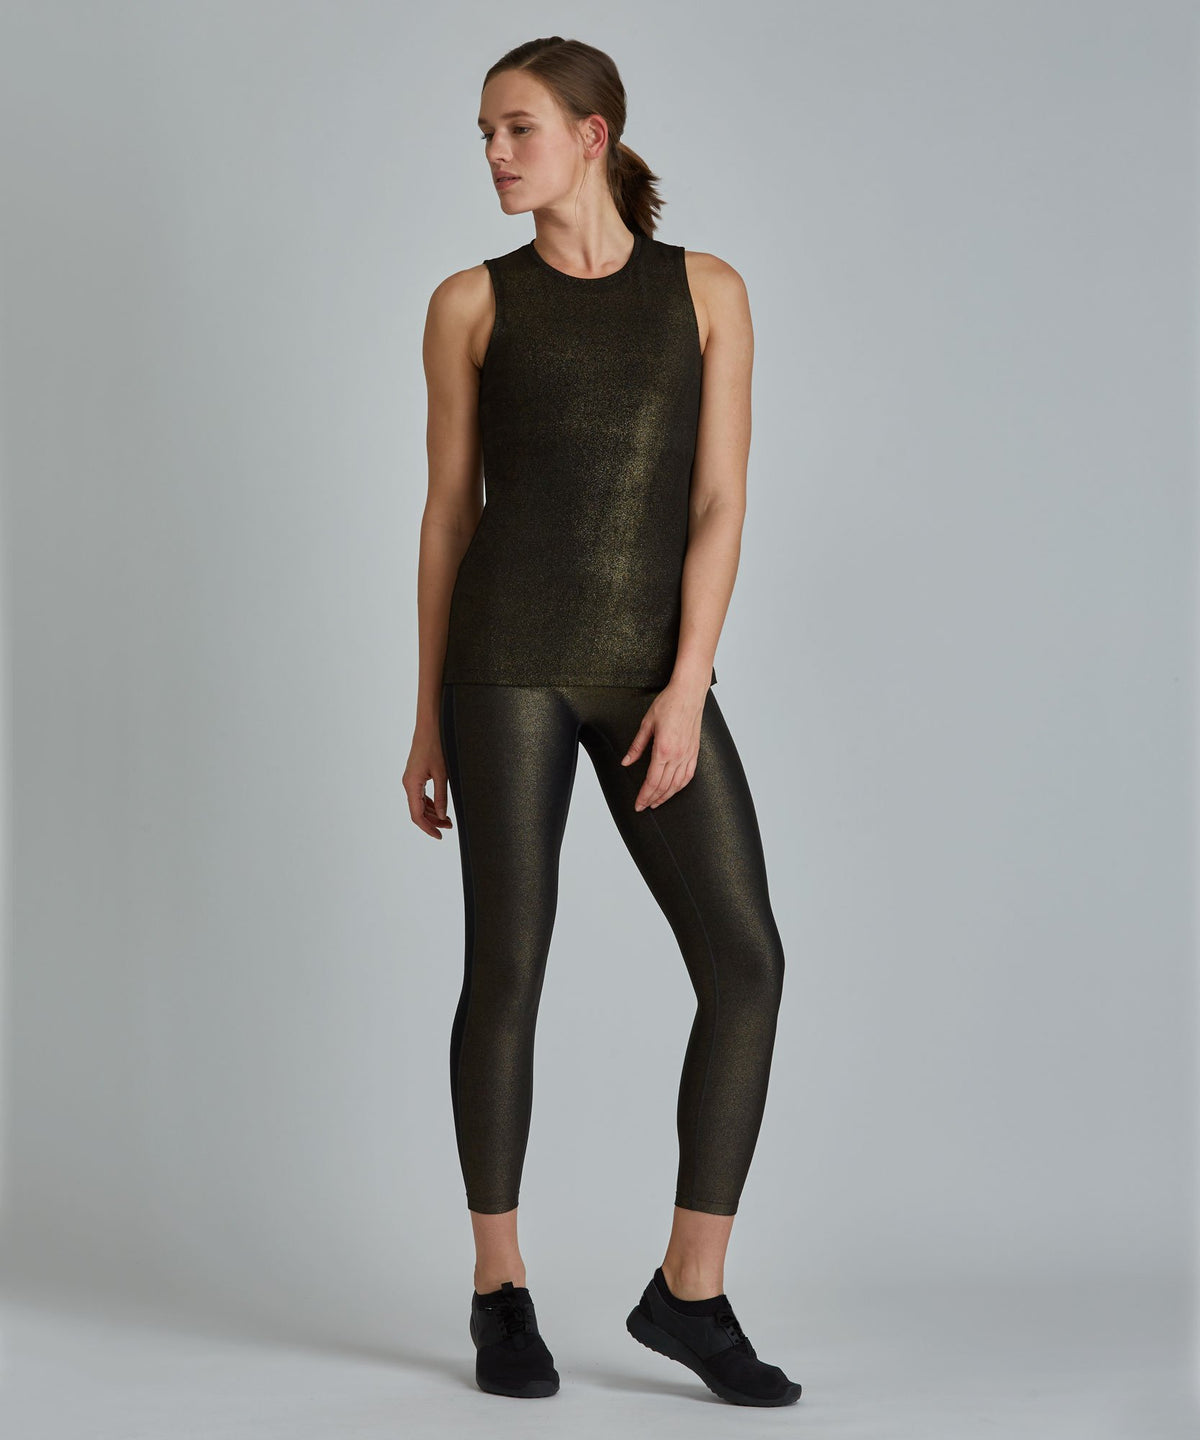 Muscle Tee - Black/ Gold Shimmer Black and Gold Shimmer Muscle Tee - Women's Activewear Tank Top by PRISMSPORT